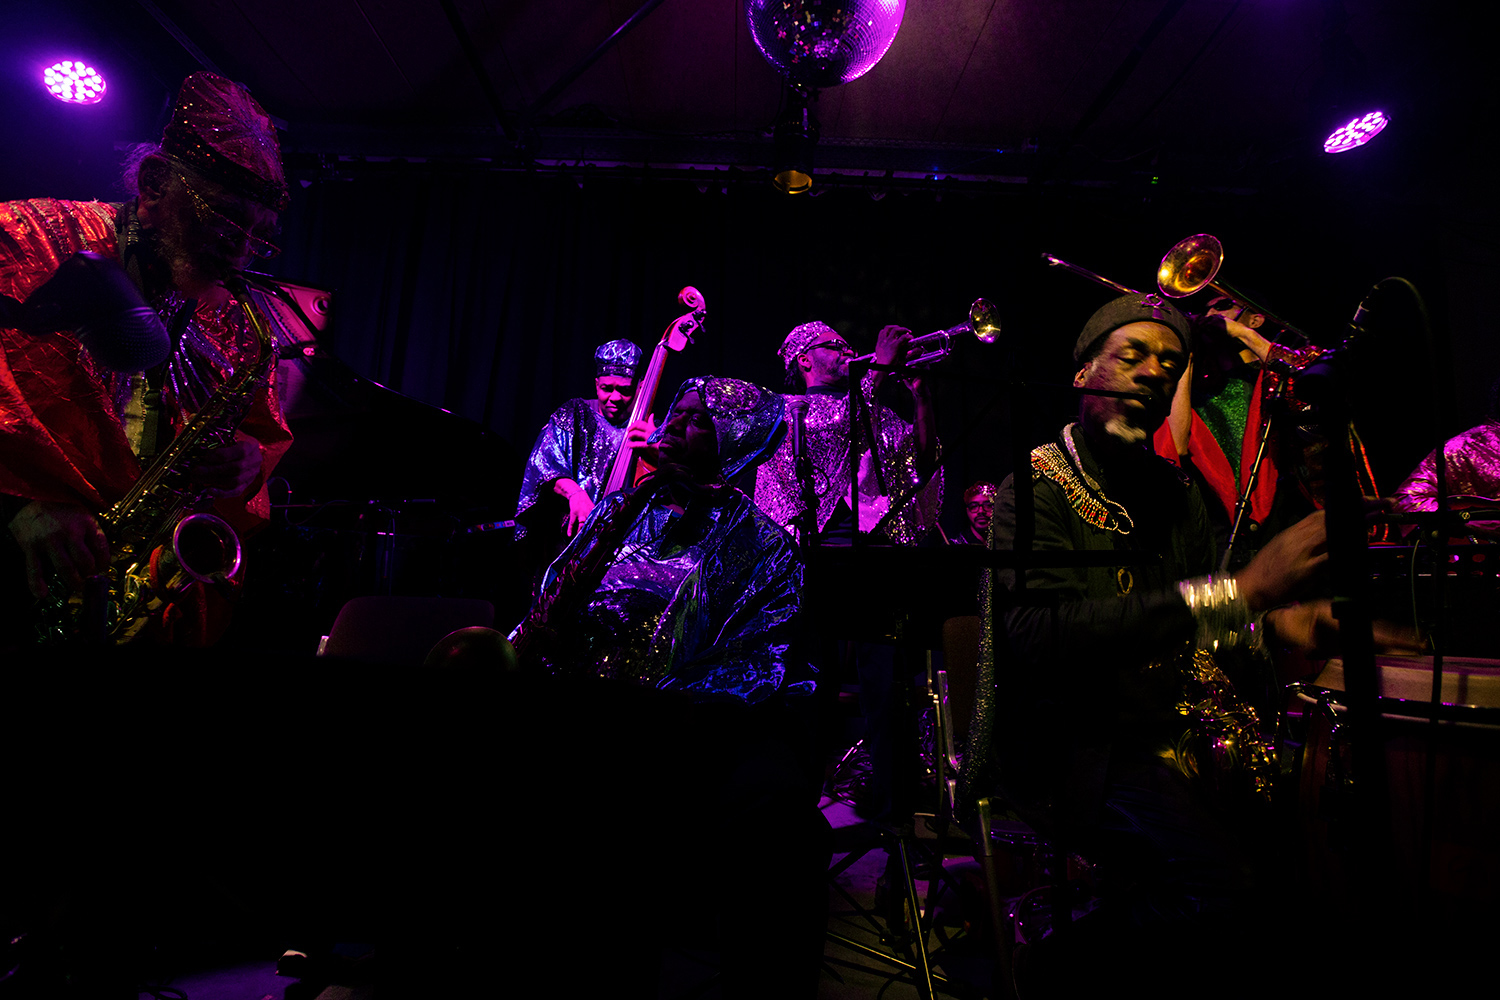 Sun Ra Arkestra directed by Marshall Allen by Laurent Orseau - Les Ateliers Claus - Brussels, Belgium #2